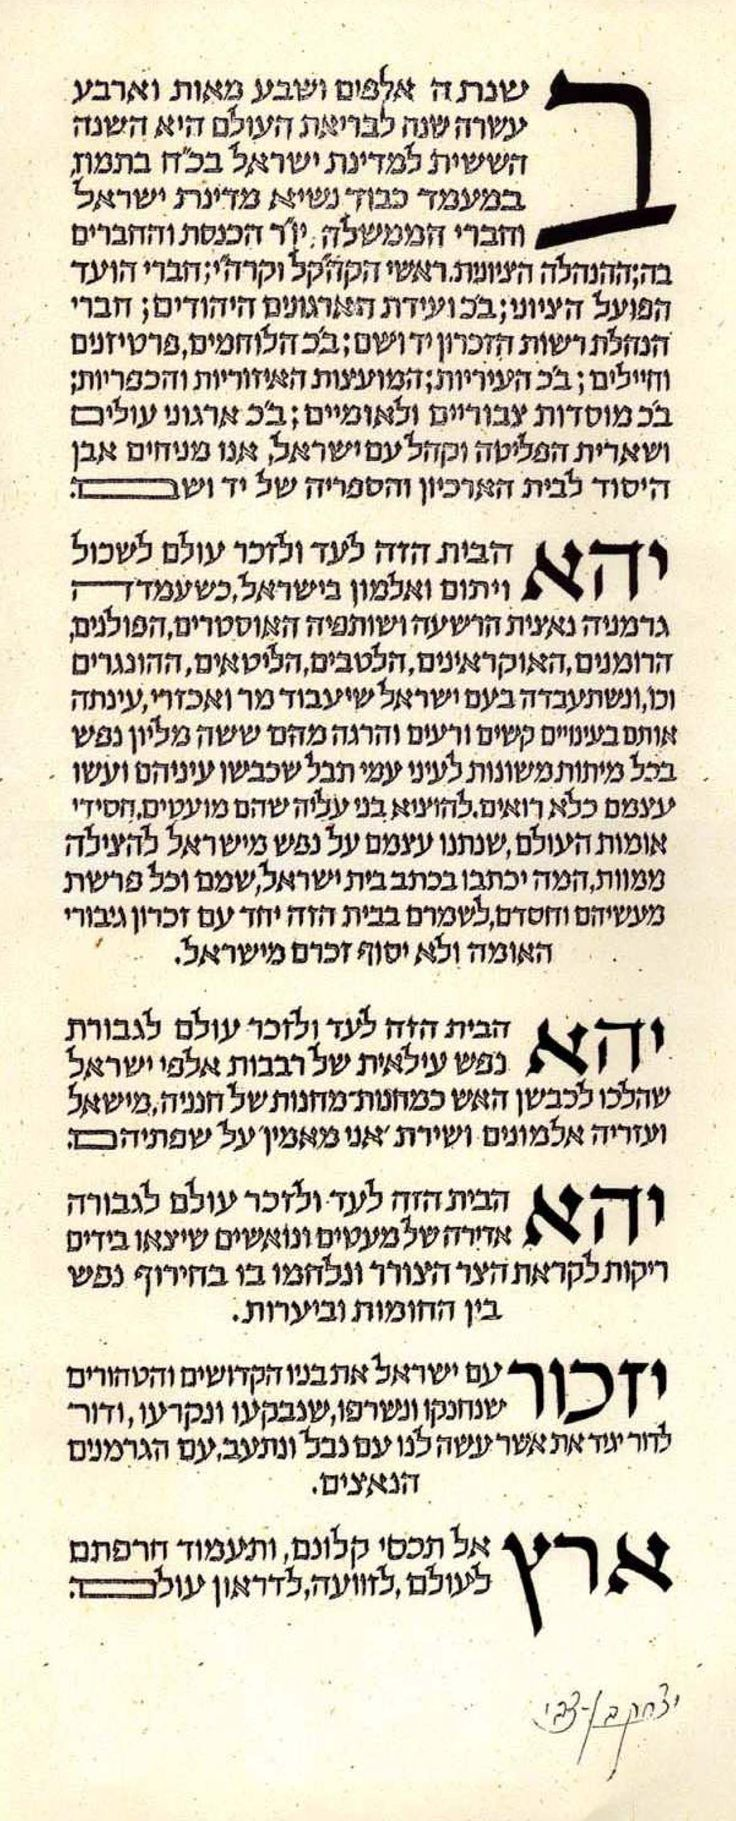 The Declaration of the Foundation of Yad Vashem   The President of Israel, Mr. Yitzhak Ben-Zvi, signed the scroll, which was composed by Israeli author Haim Hazaz.